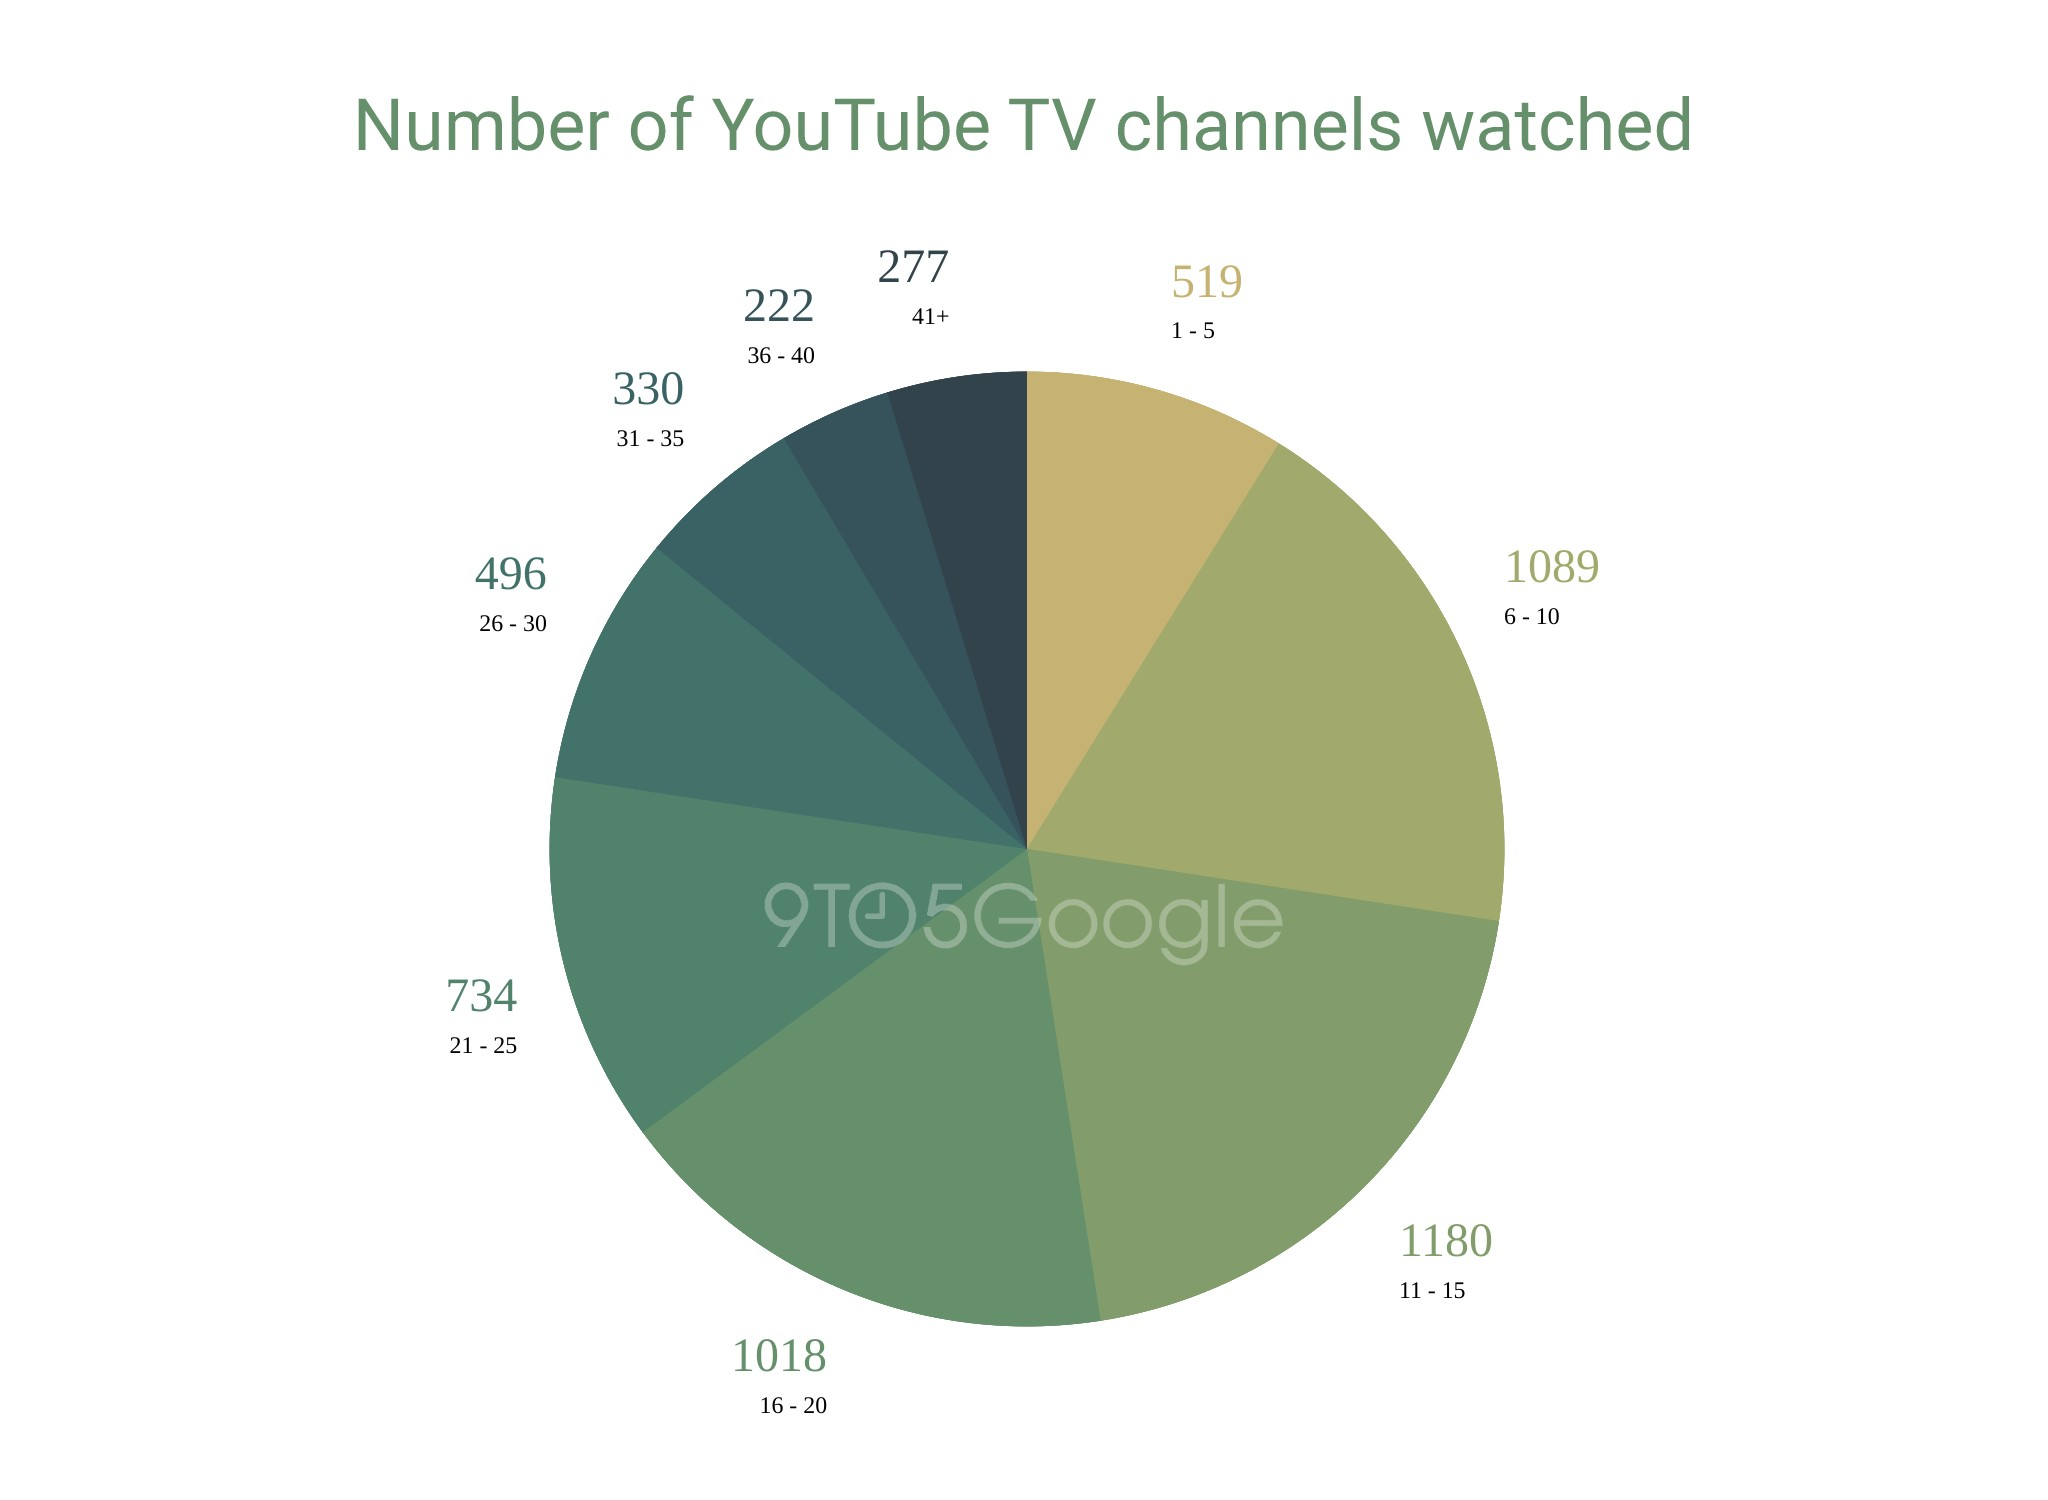 Pie chart indicating number of YouTube TV channels watched 1 to 5 channels: 519 6 to 10: 1089 11 to 15: 1180 16 to 20: 1018 21 to 25: 734 26 to 30: 496 31 to 35: 330 36 to 40: 222 41 or more: 277